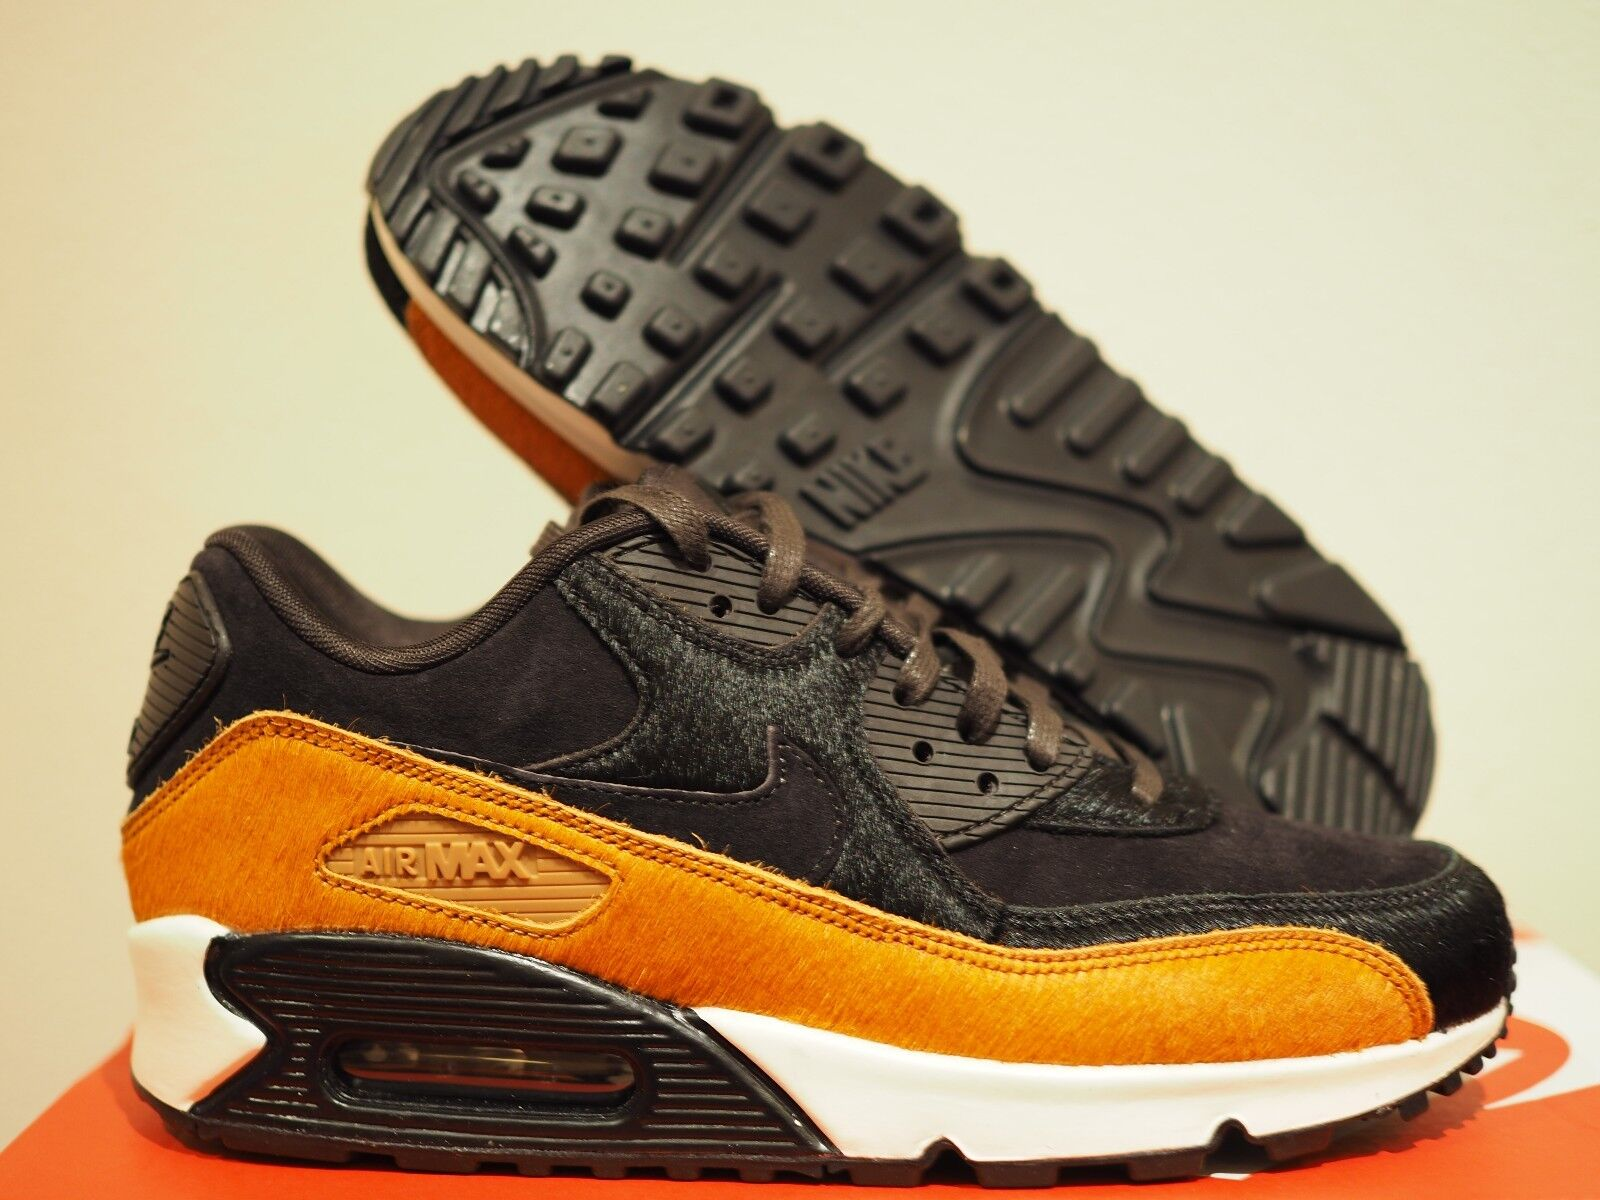 quality design dc2ce 6e65d Women s Nike Air Max 90 LX Black Tan Size 7.5 7.5 7.5 Pony Hair Casual Shoes.  Nike Air Force 1 Upstep ...